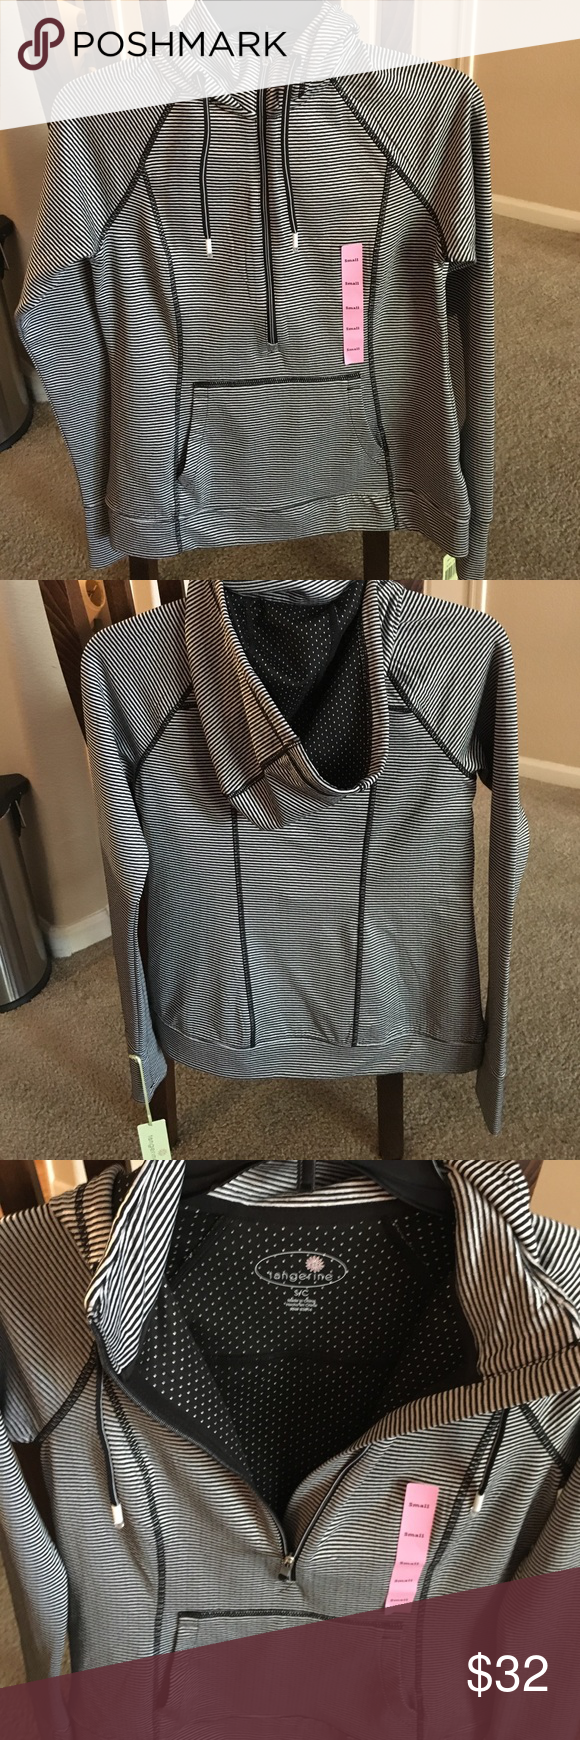 NEW Ladies small Tangerine Collared FullZip Hoodie New With Tags ladies small tangerine collared hoodie, black/white, stretchy moisture wicking material. $80 retail price. Good for any weather and any situation!!! Tangerine Tops Sweatshirts & Hoodies